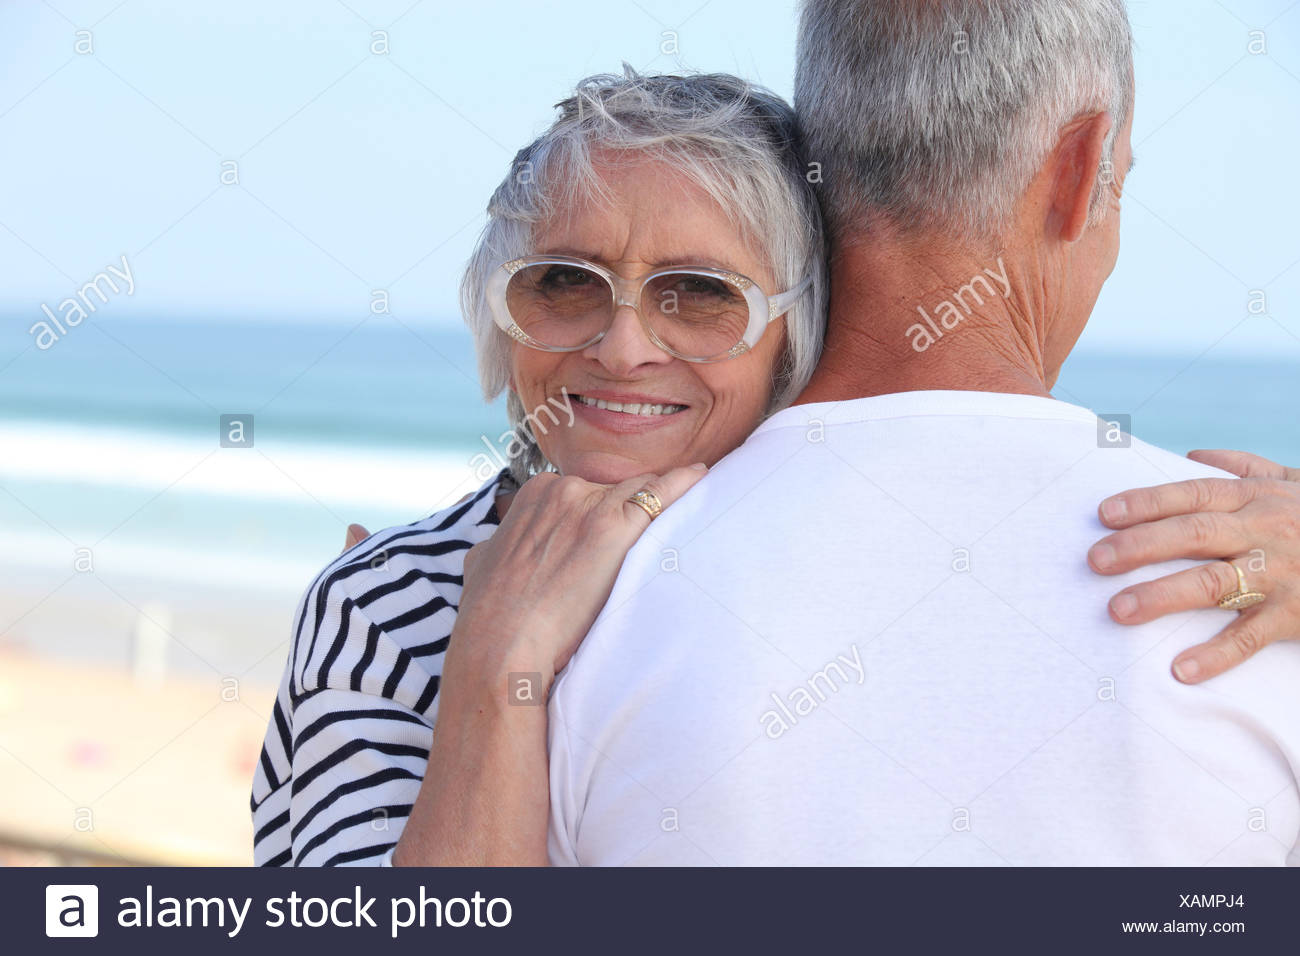 Elderly couple hugging by a beach - Stock Image